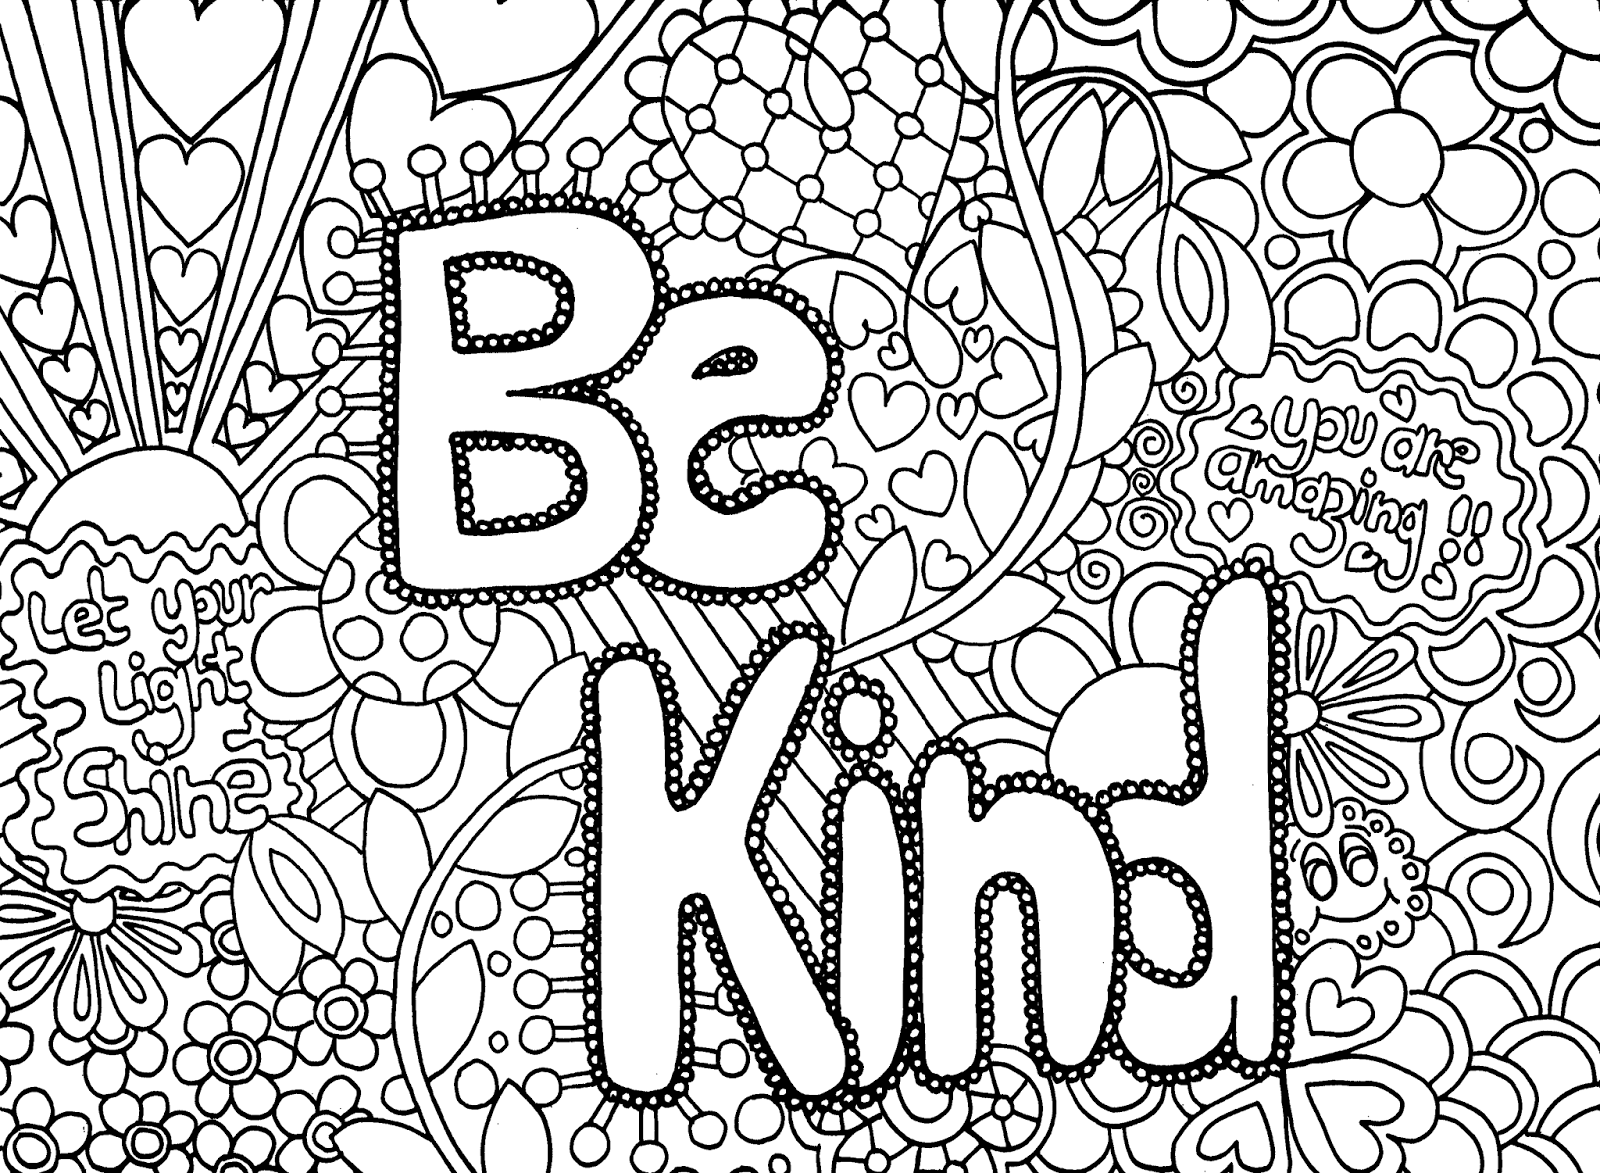 detailed coloring pictures inspirational detailed unicorn coloring pages tylerhedrick pictures detailed coloring